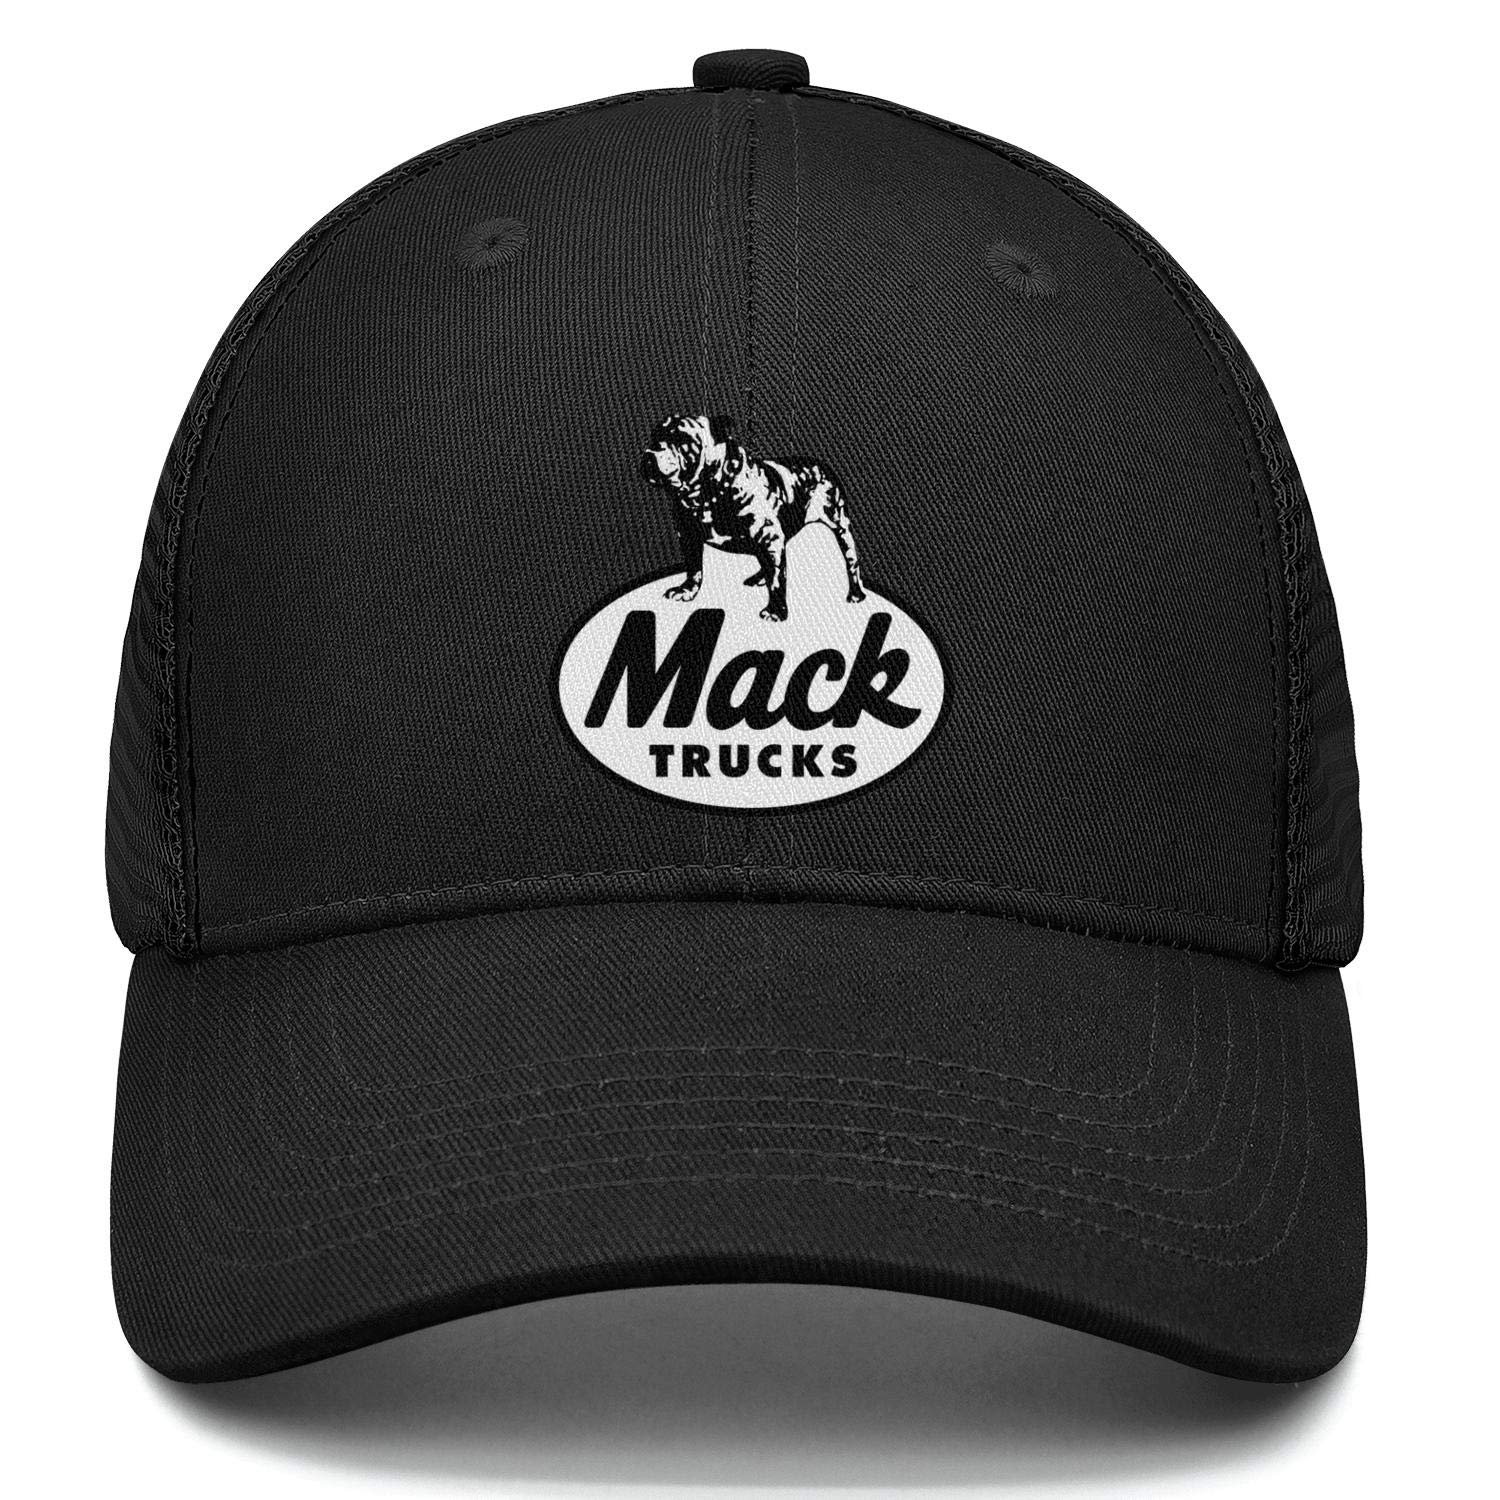 Unisex Mack Truck Hat Adjustable Fitted Dad Baseball Cap Trucker Hat Cowboy Hat